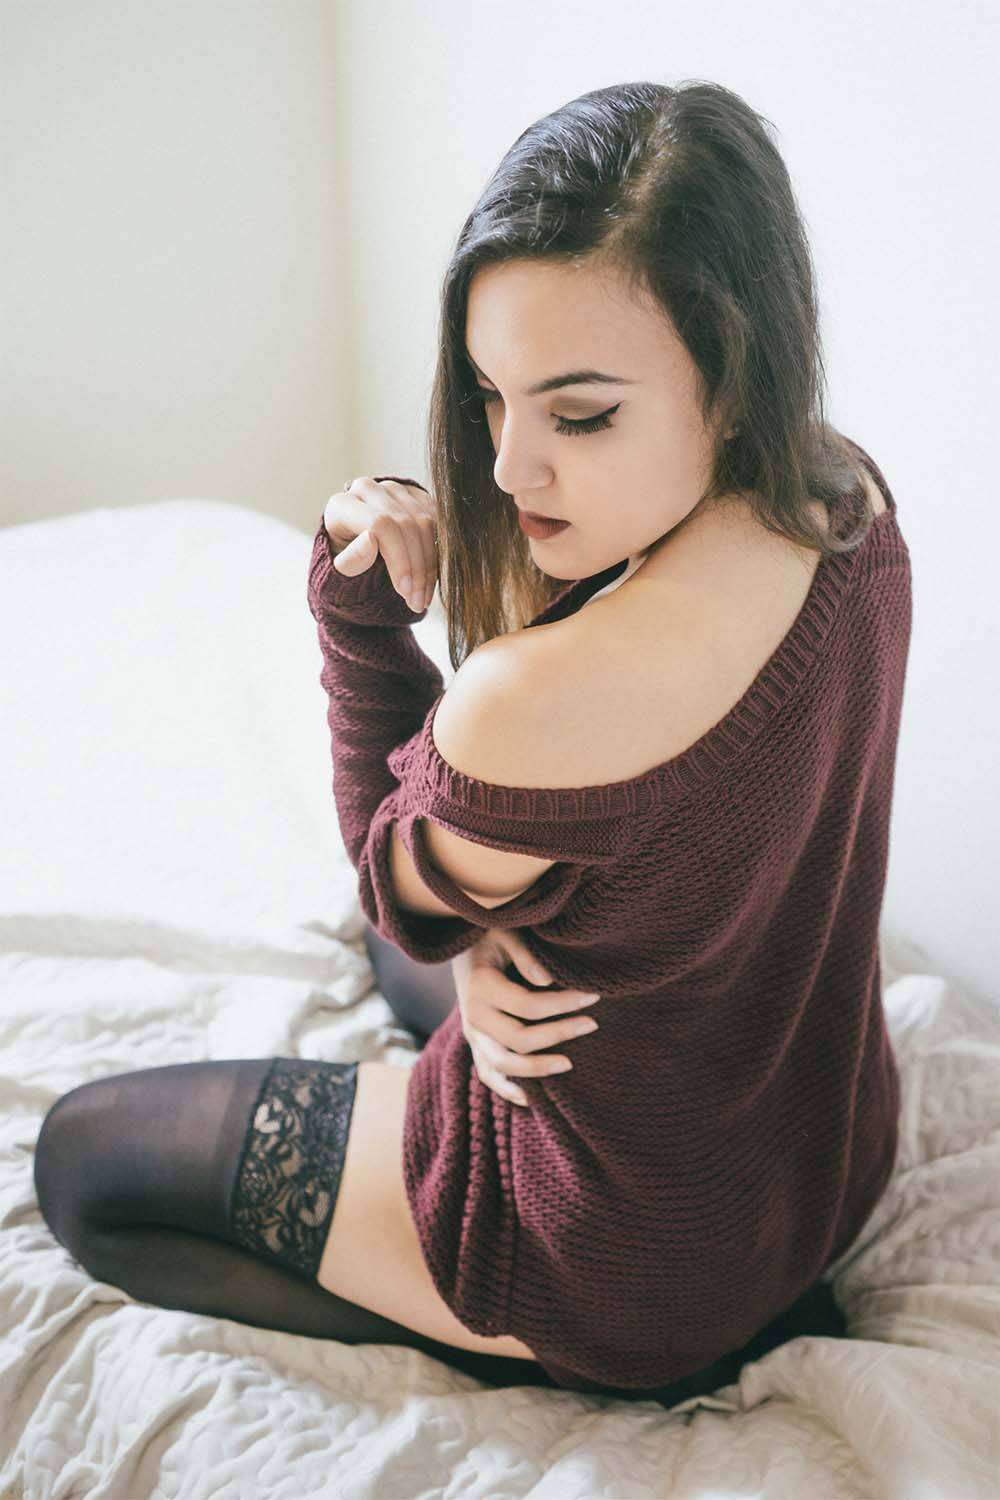 stockings outfits guys find attractive